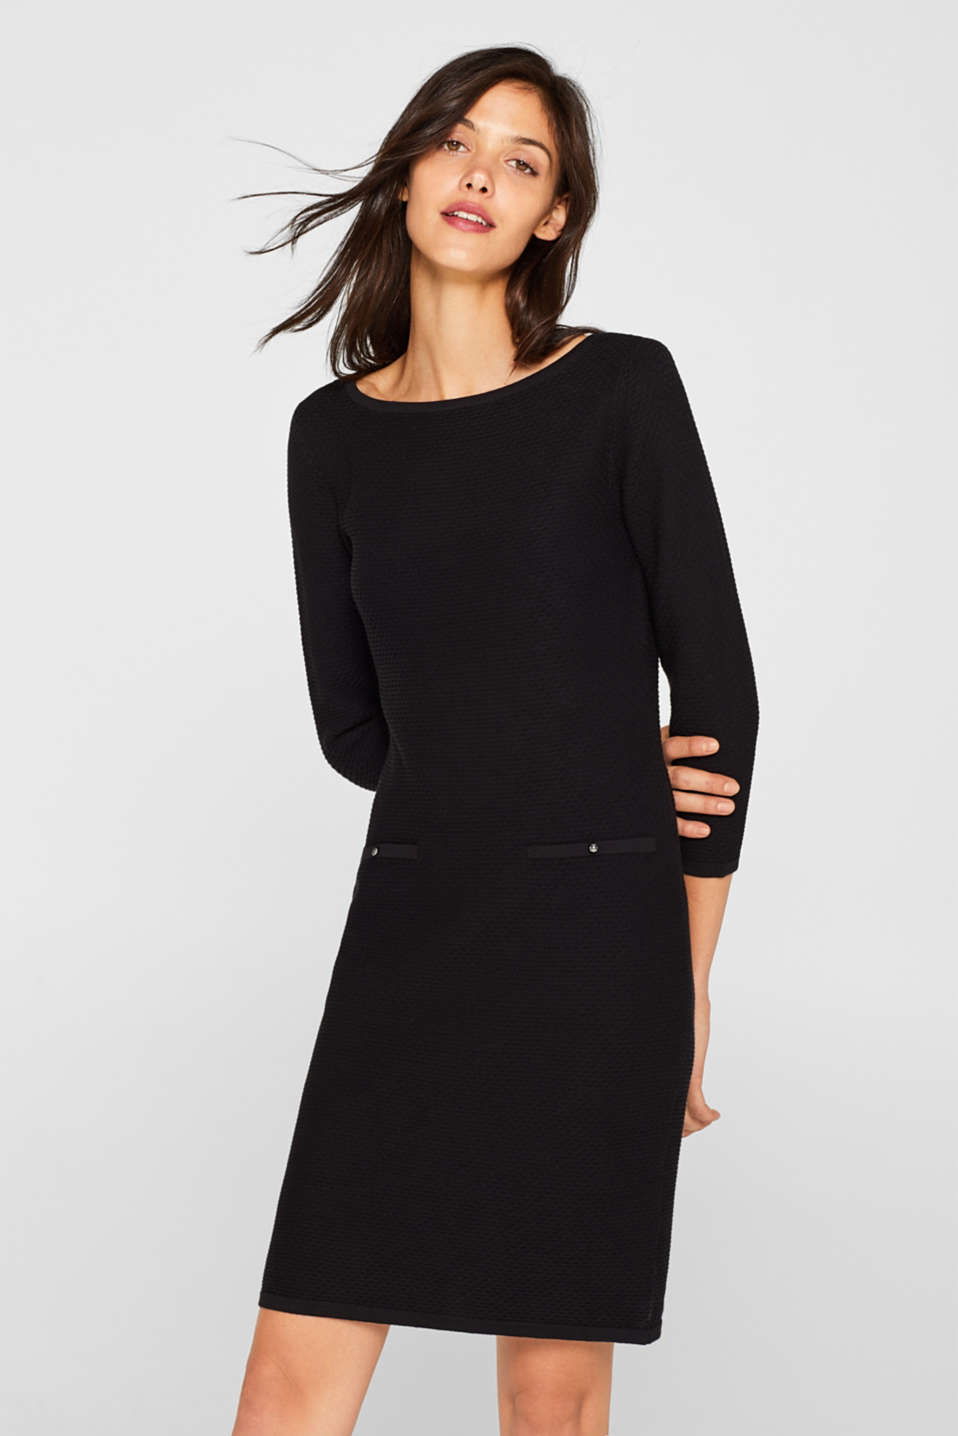 Esprit - Textured knitted dress with decorative buttons